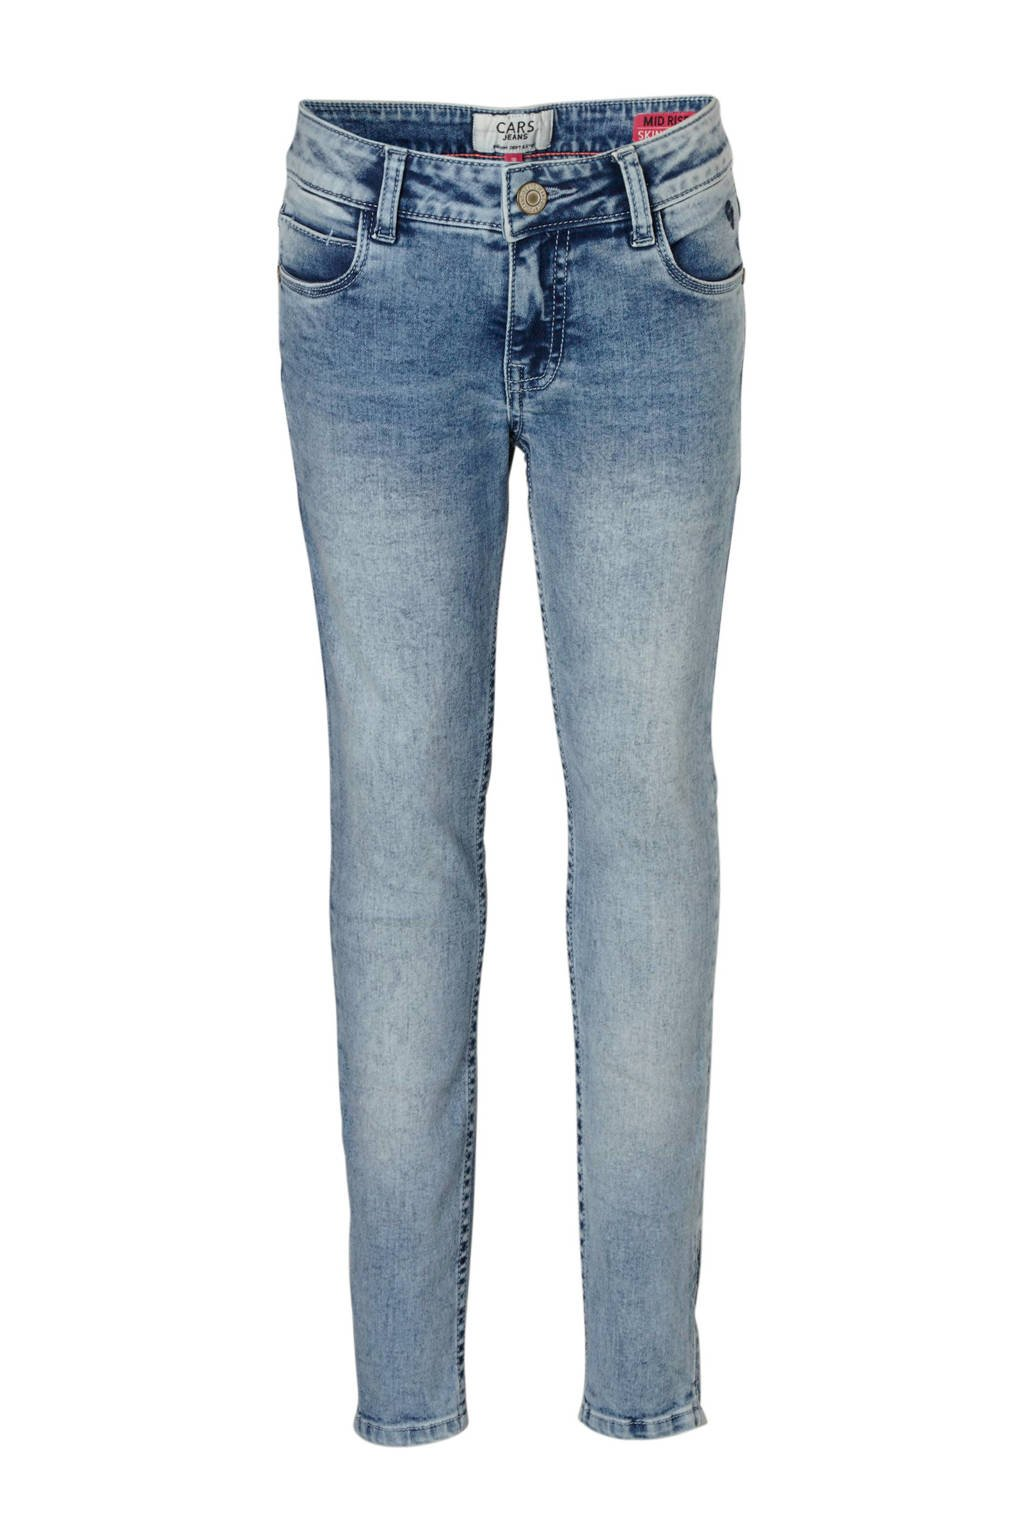 Cars slim fit 7/8 jeans Pearl, Stonewashed